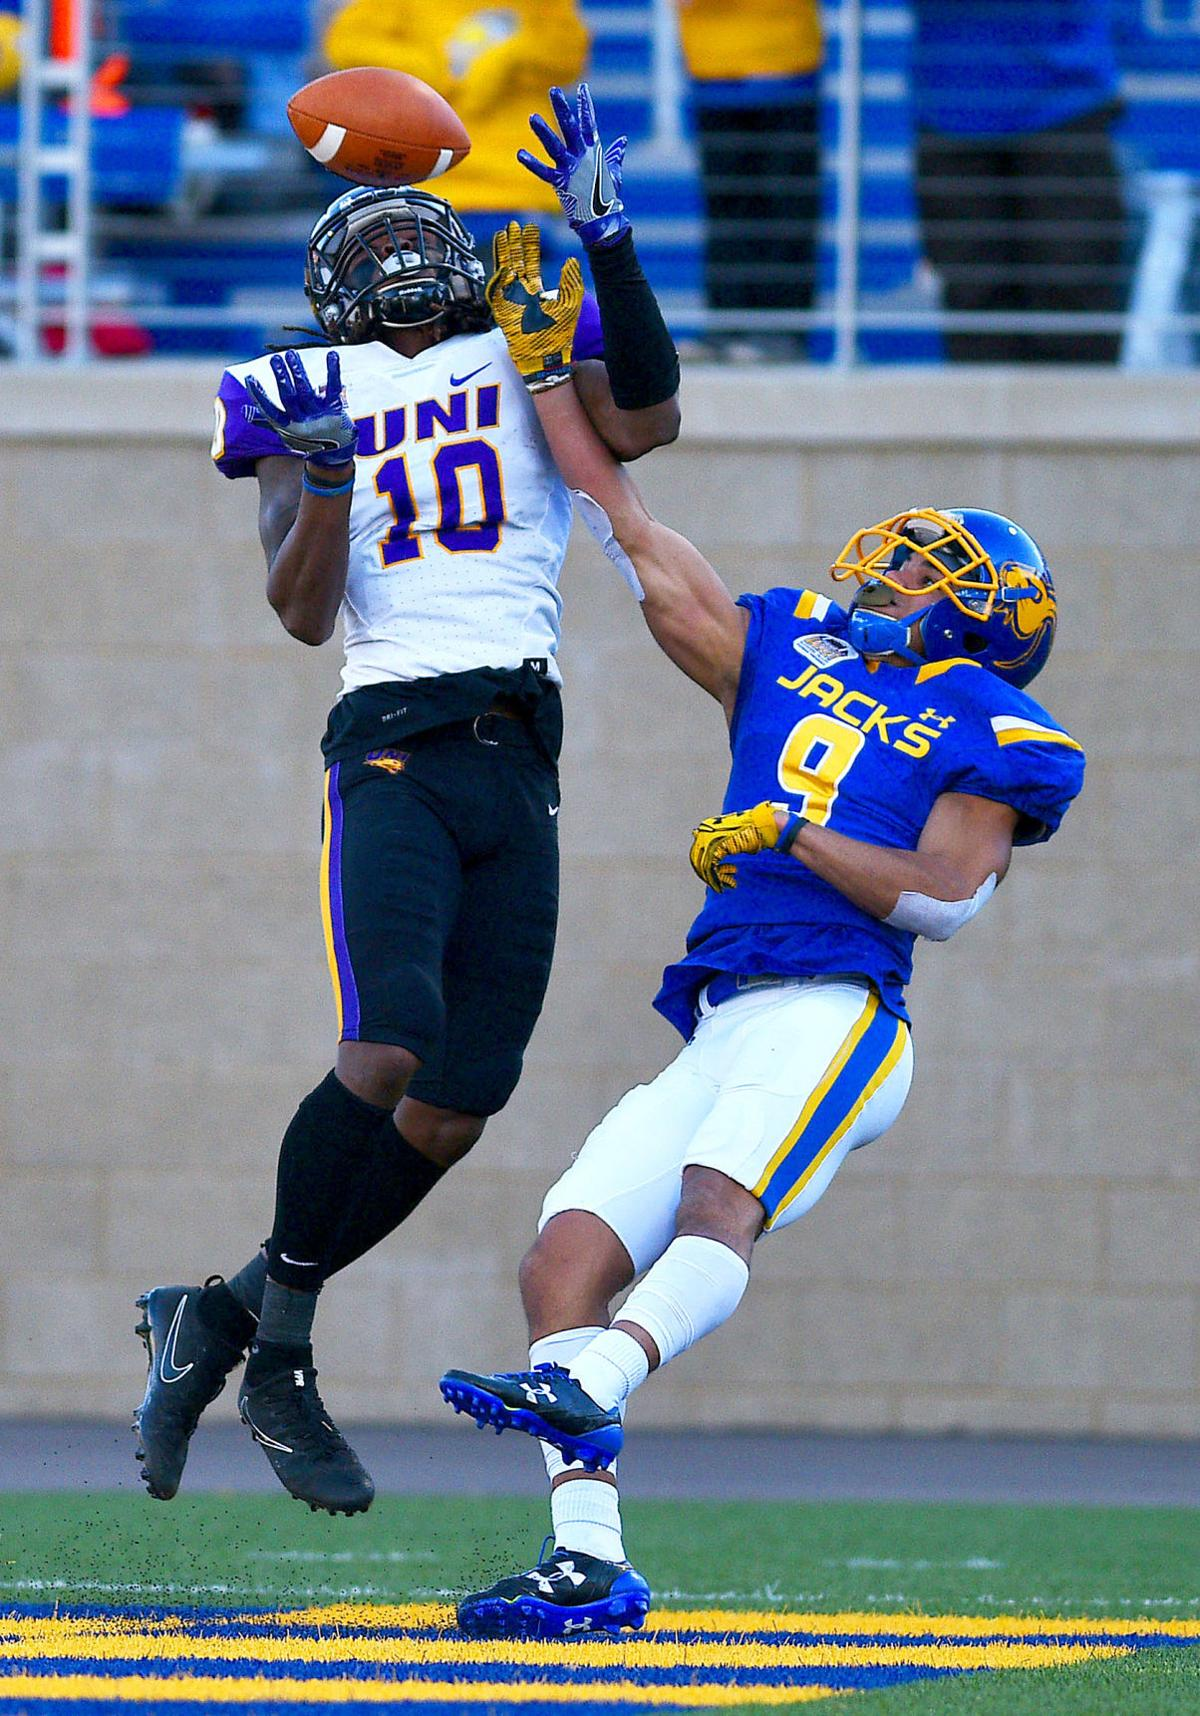 College football: UNI falls to SDSU in second-round of FCS playoffs, 37-22 | PantherMania.net ...